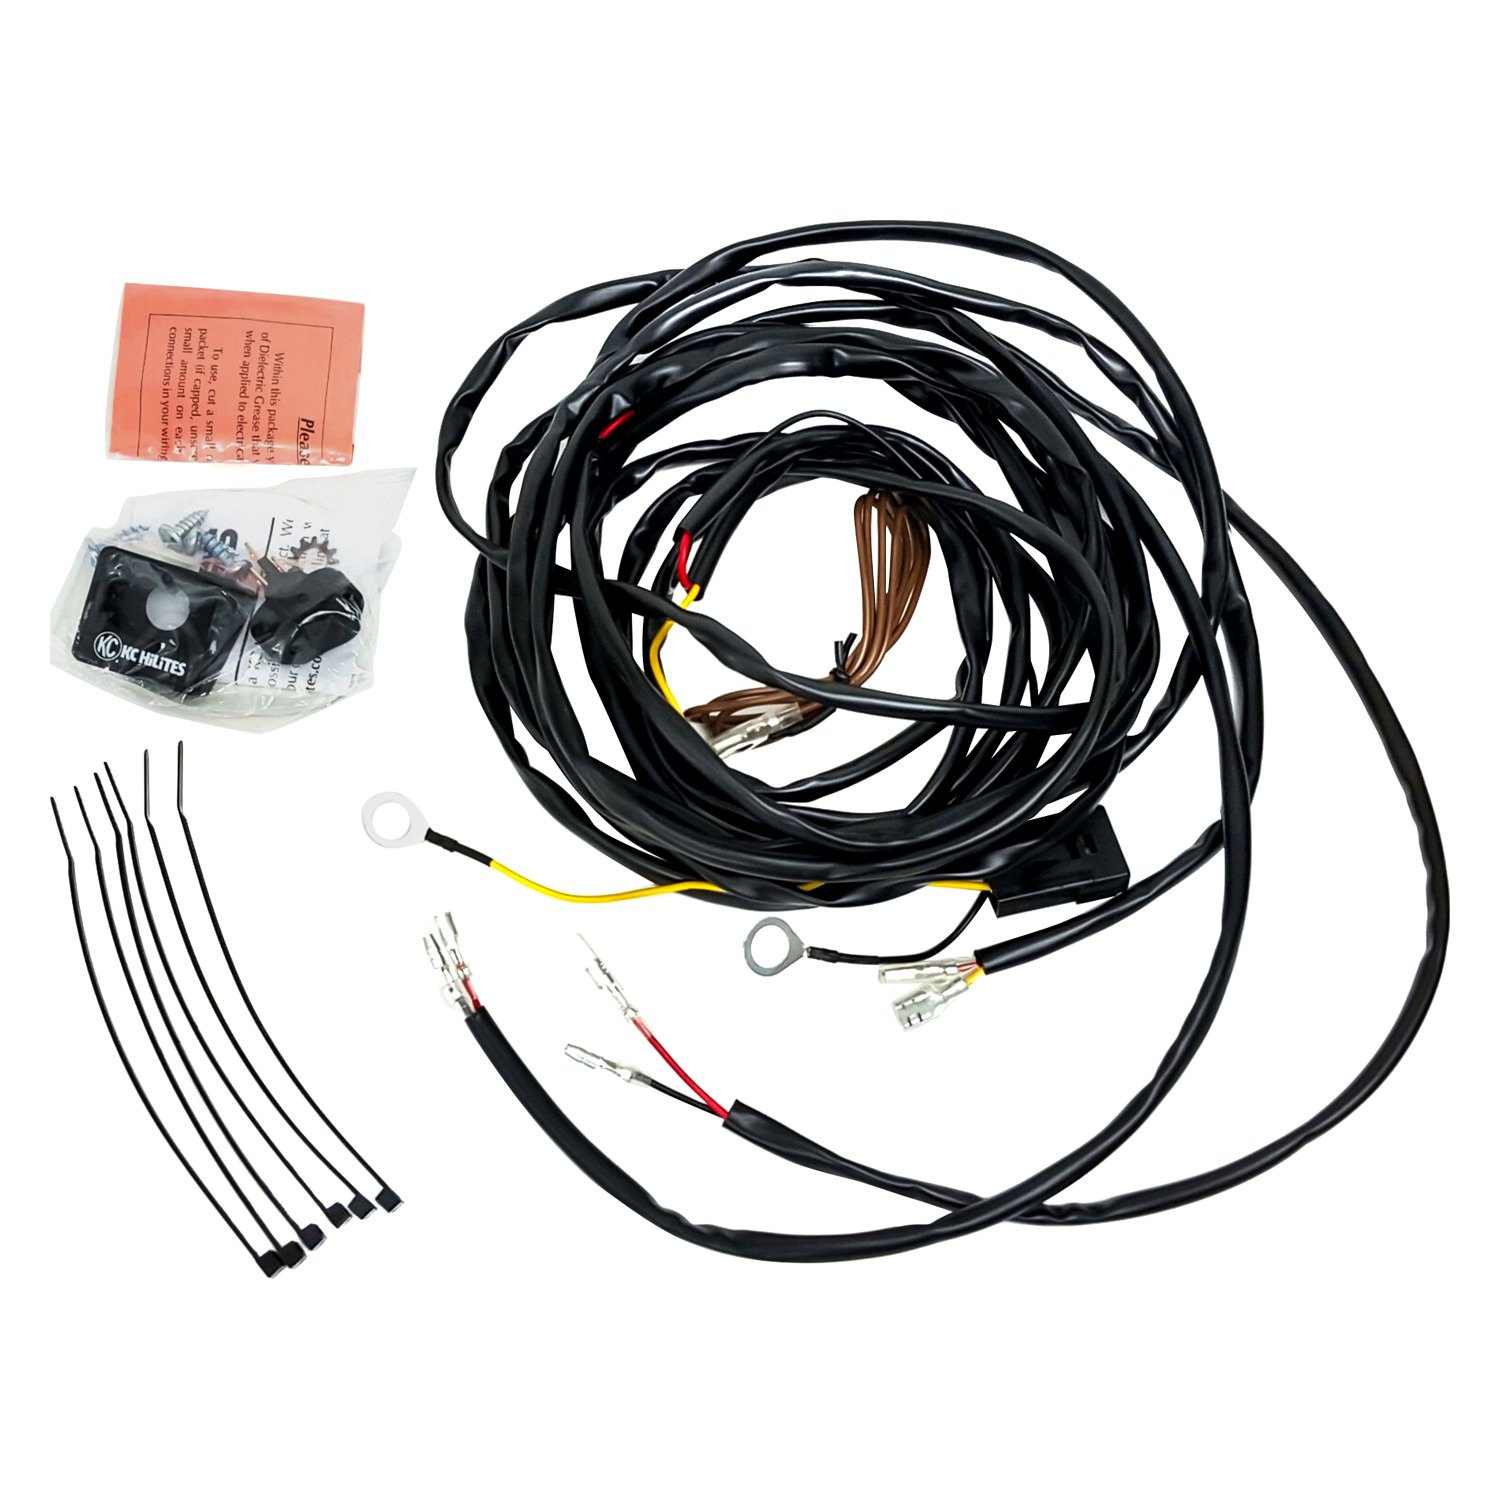 hight resolution of kc hilites 63082 wiring harness for two cyclone led lights kc wiring harness kc hilites